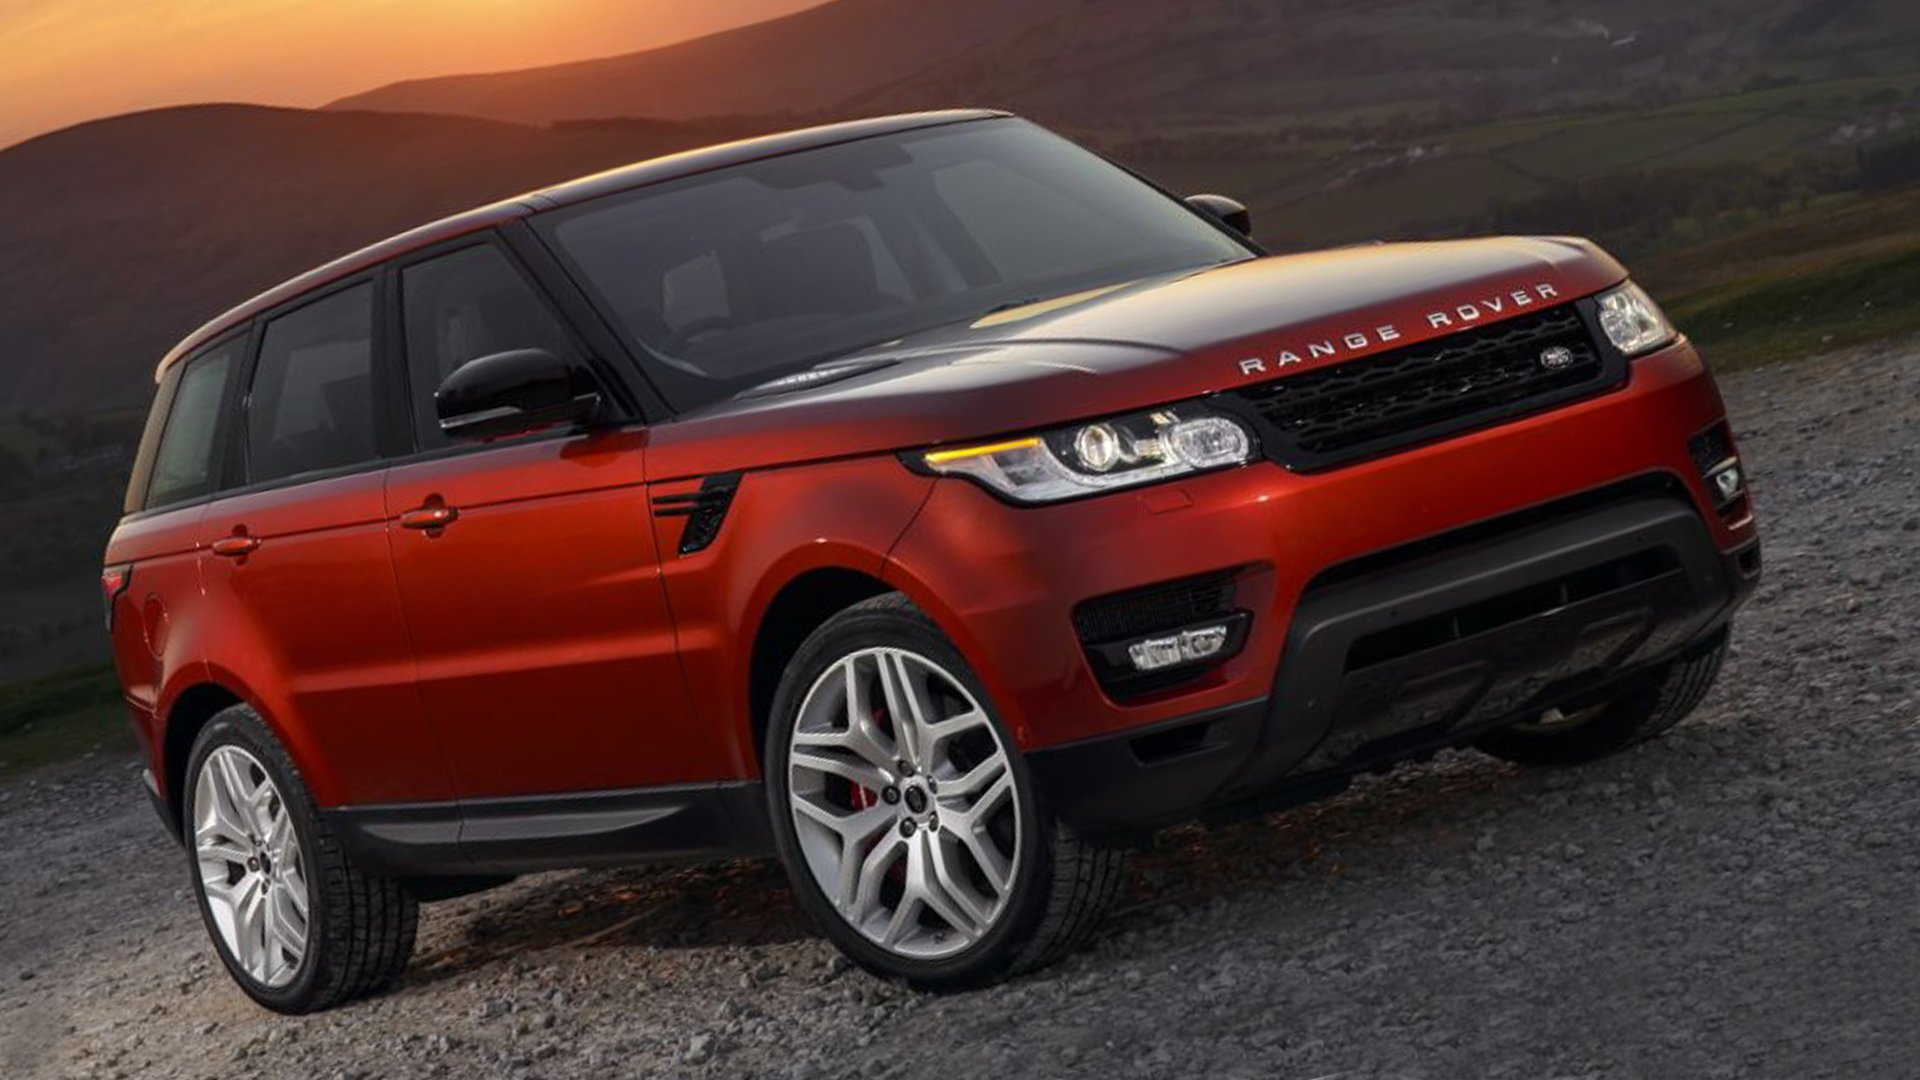 New 2019 Range Rover Sport Review